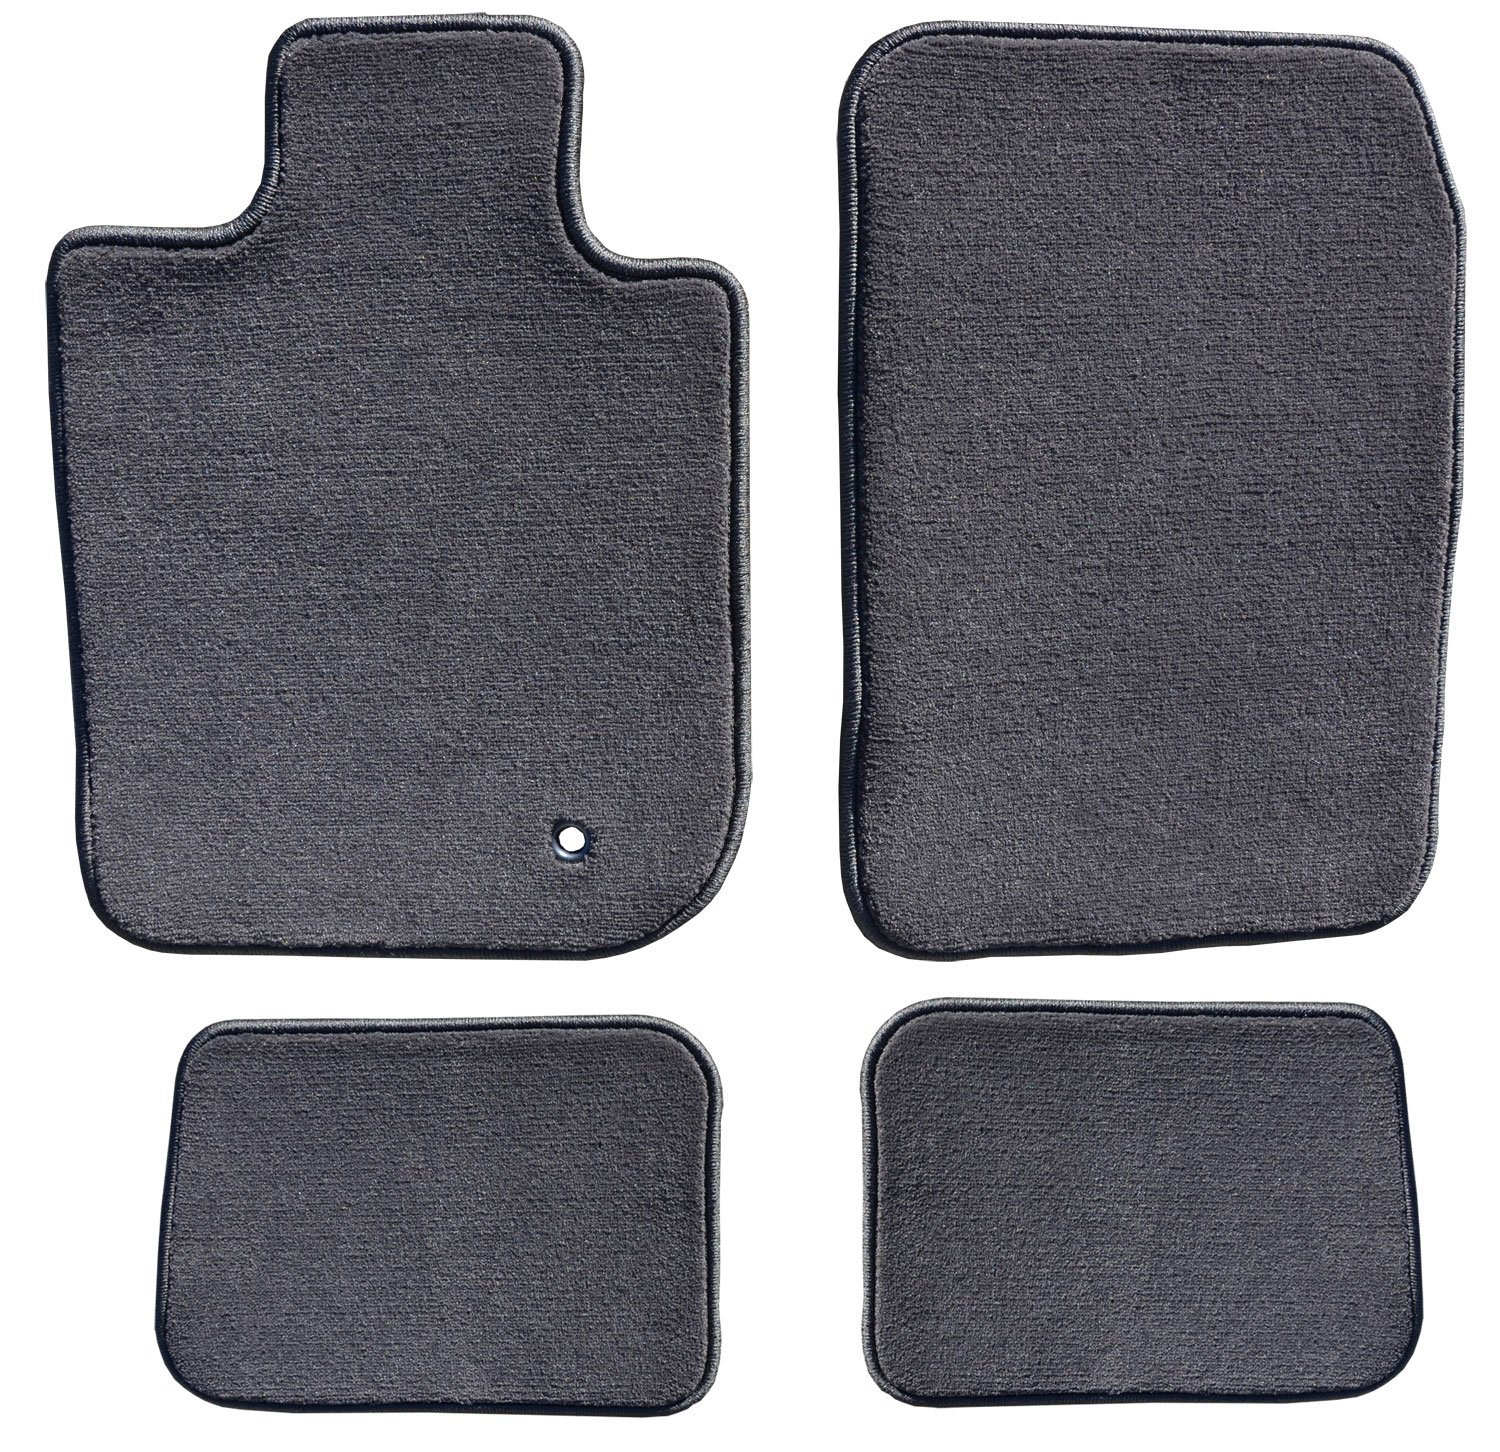 Charcoal GG Bailey D4476A-S1A-CC-CHAR Two Row Custom Fit Car Mat Set for Select Ford Focus Models Polypropylene Fiber